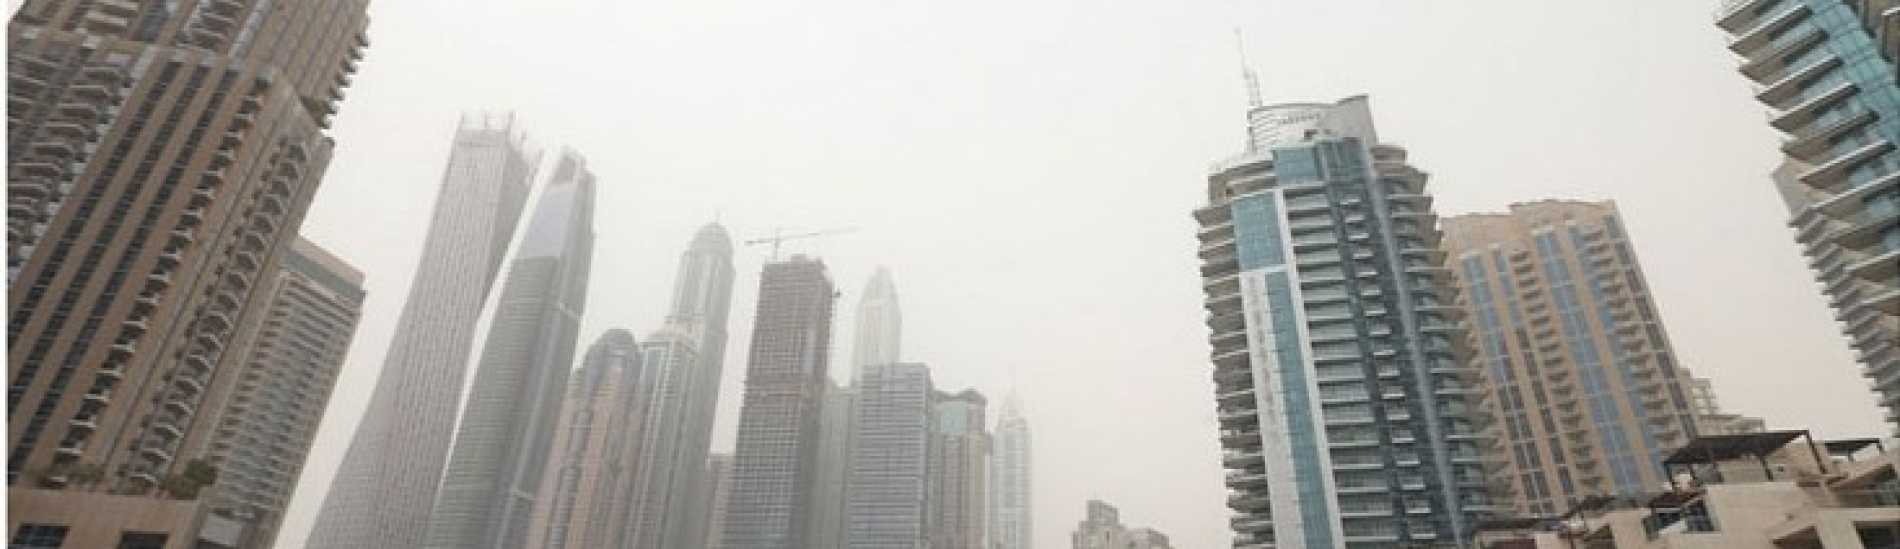 Dubai is most affordable among expensive cities